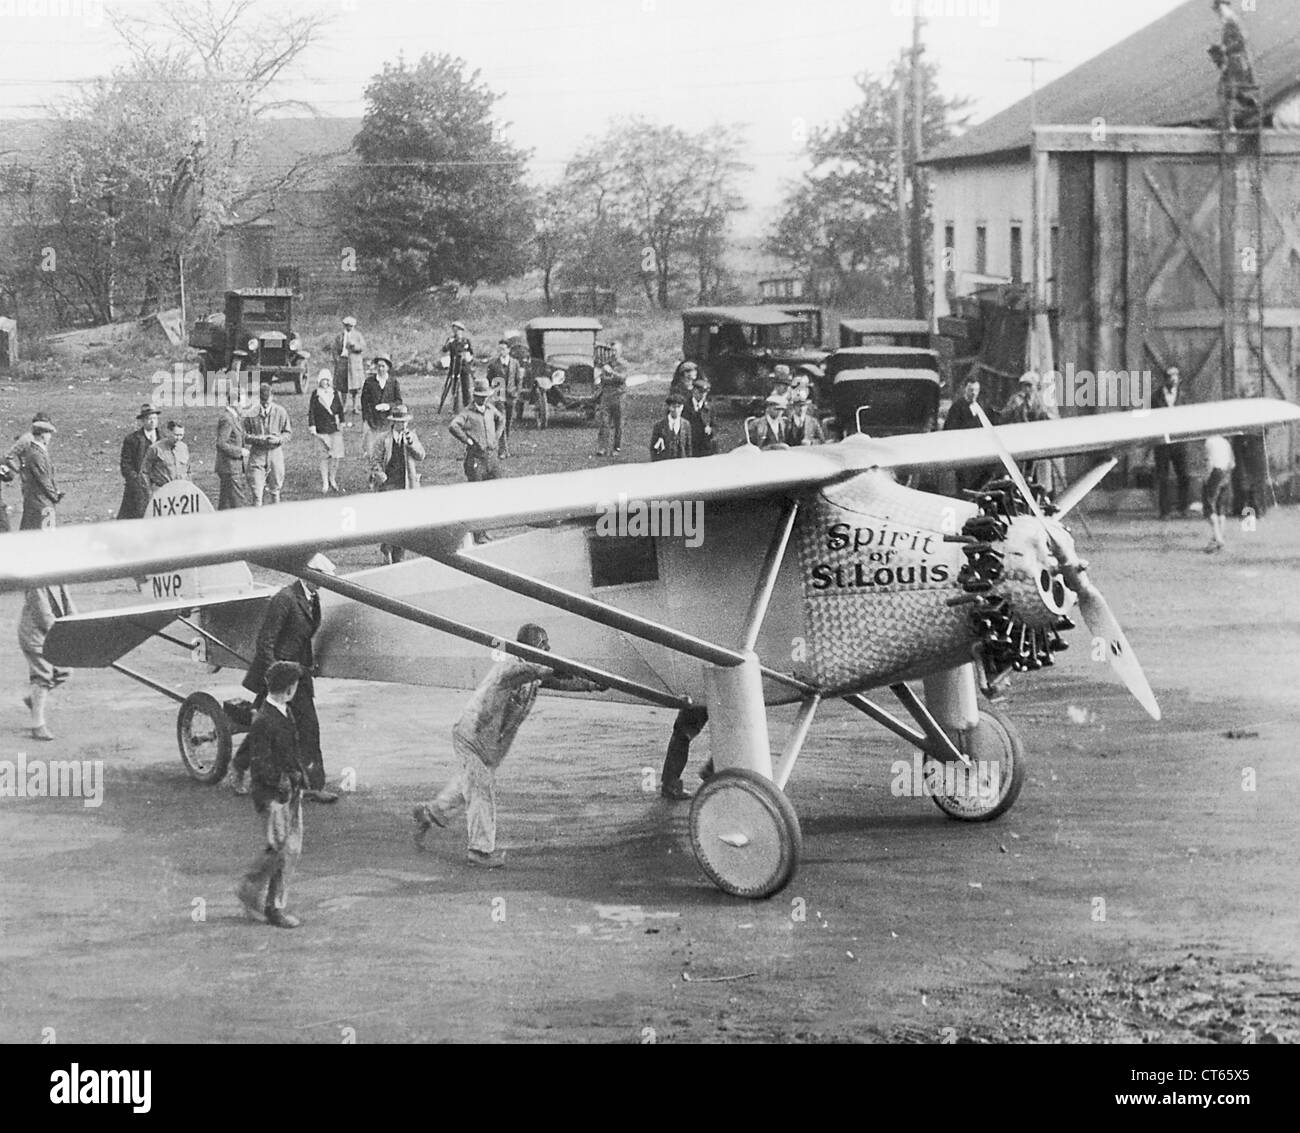 Charles Lindbergh's Spirit of St Louis, Long Island, New York - Stock Image